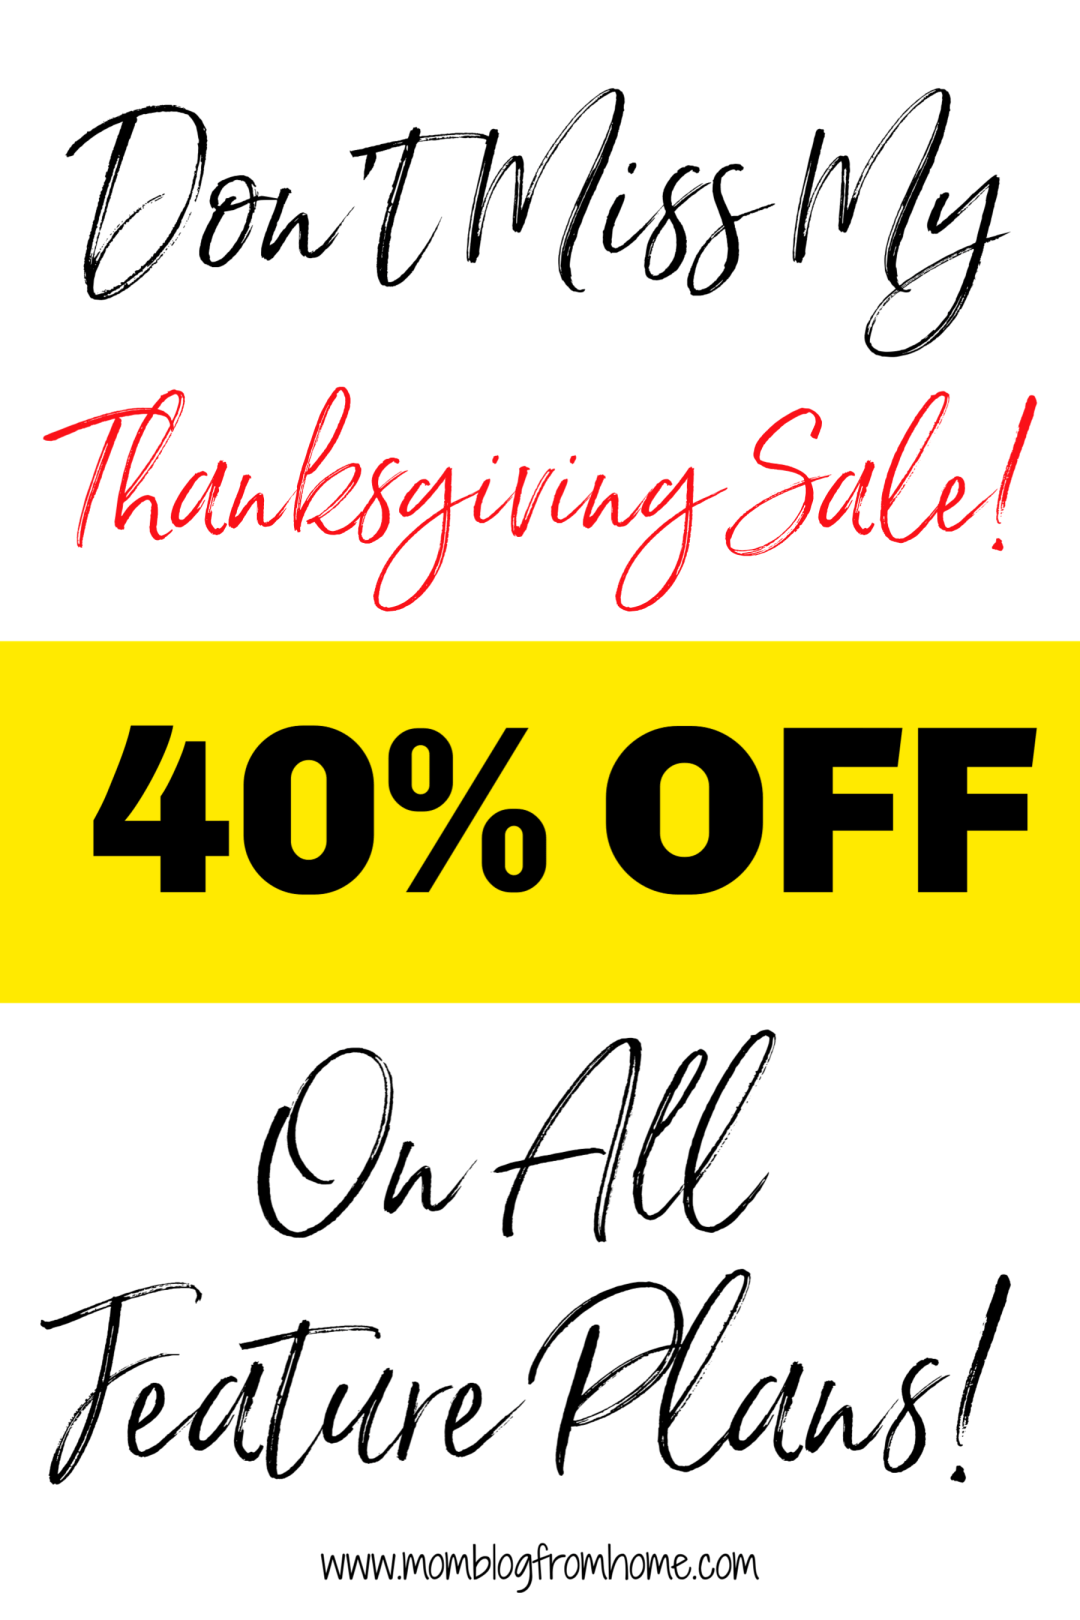 Thanksgiving Black Friday Sale 2018 - mom blog from home